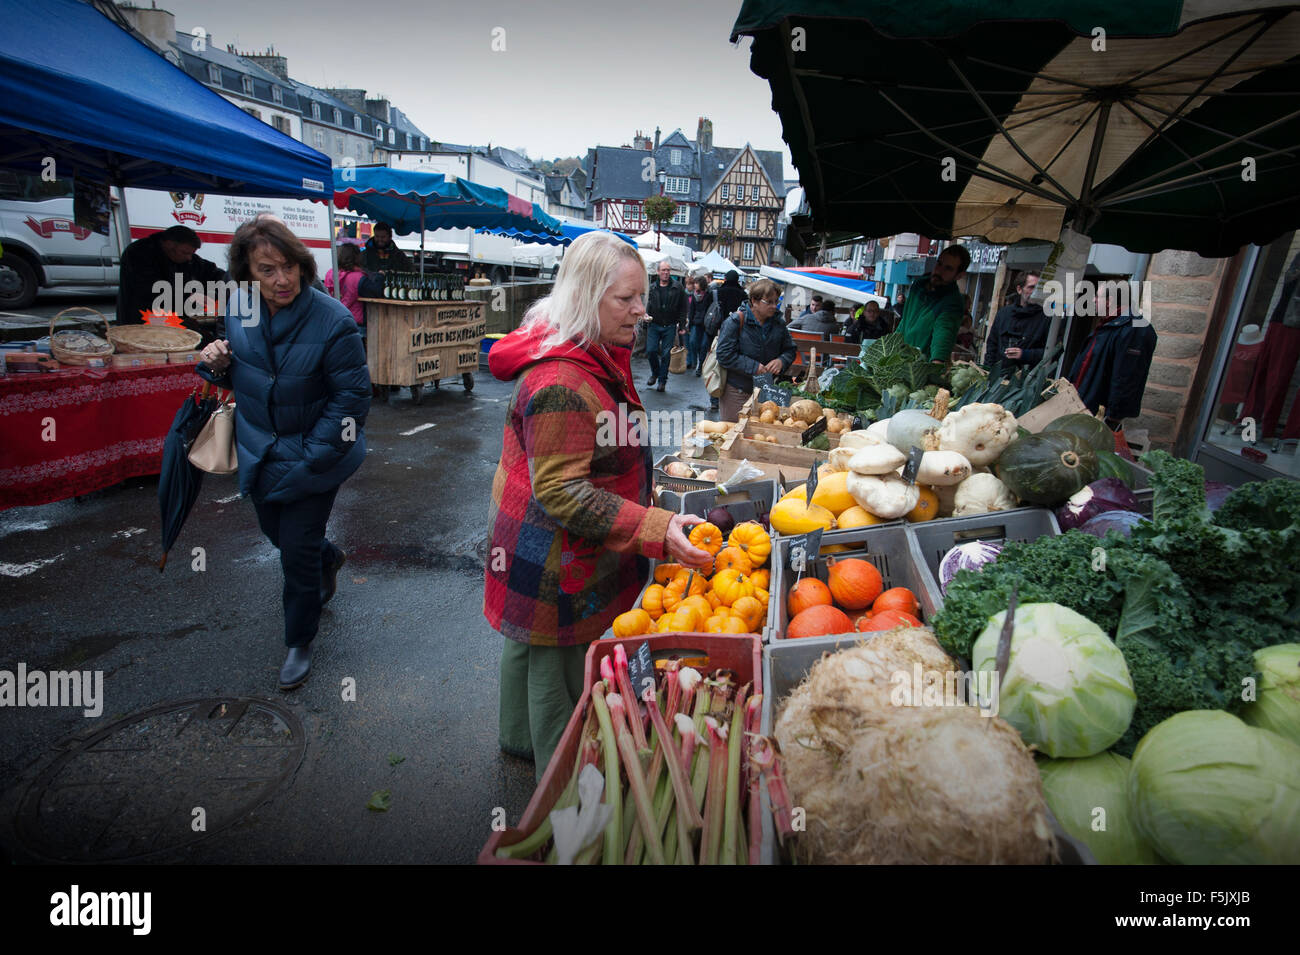 Morlaix, Brittany, France. The market and old buildings. October 2015 Woman in red coat model released. - Stock Image